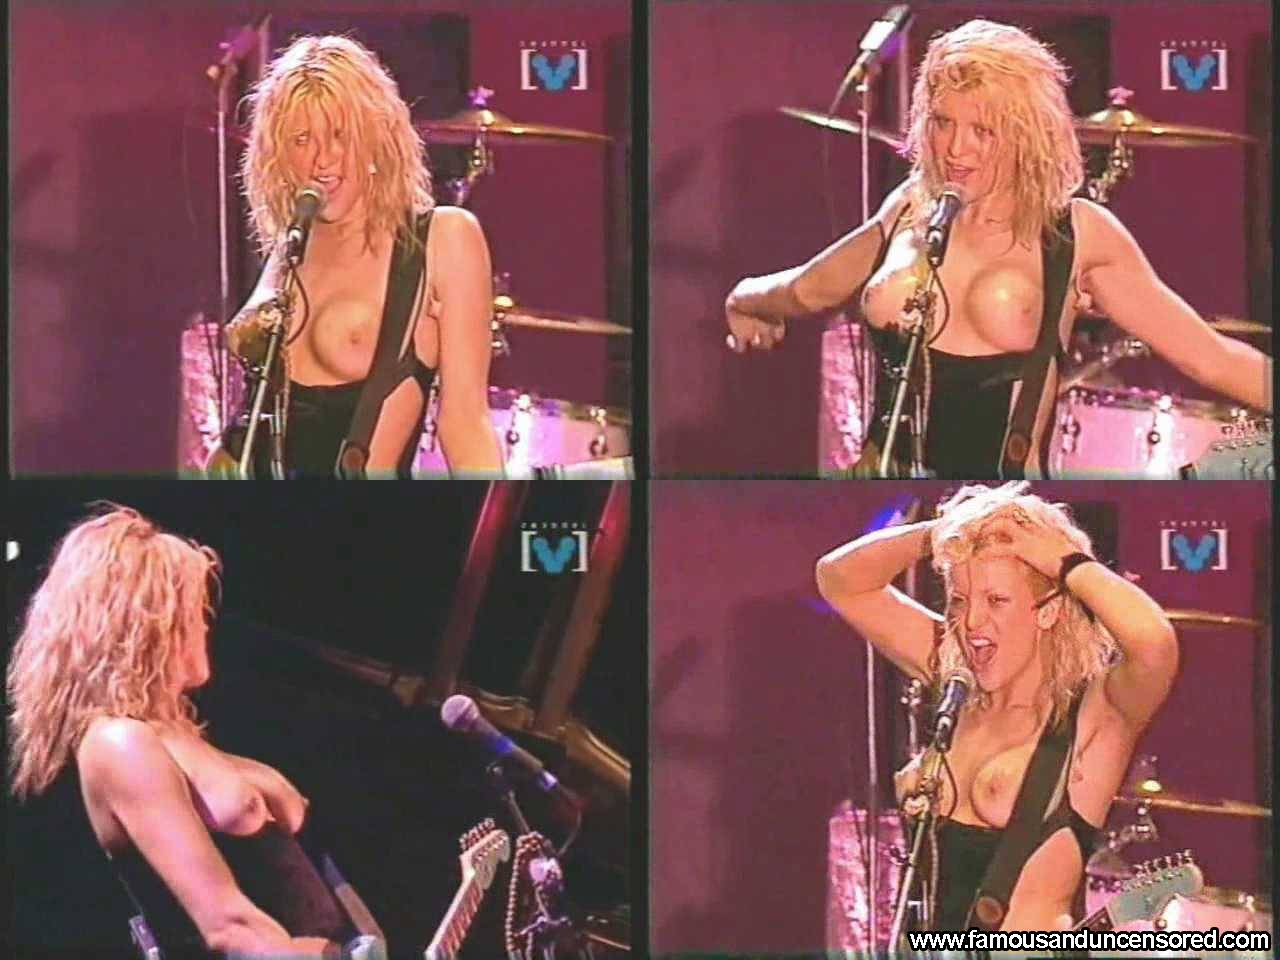 Naked pictures of courtney love